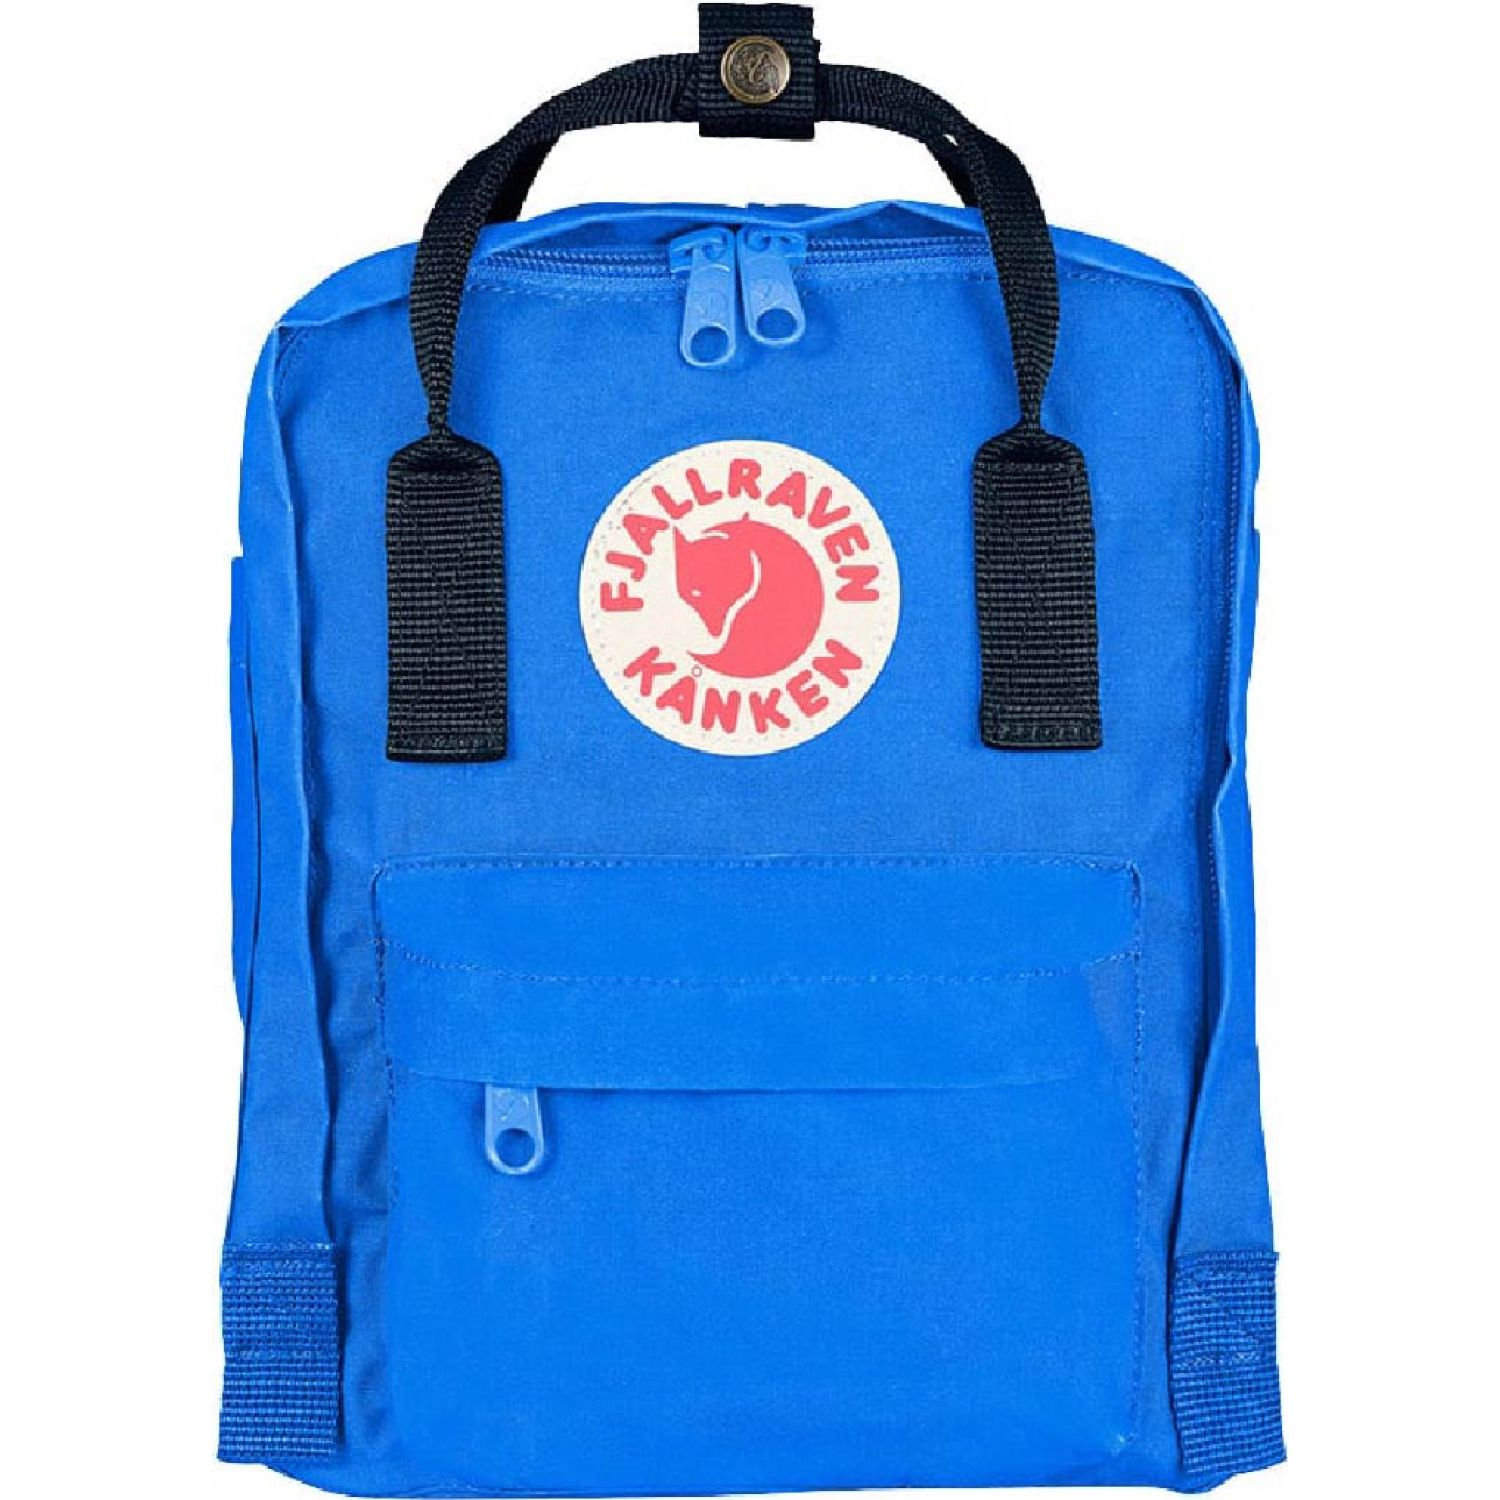 FJALLRAVEN kanken mini Celeste / azul Mochilas Multipropósitos